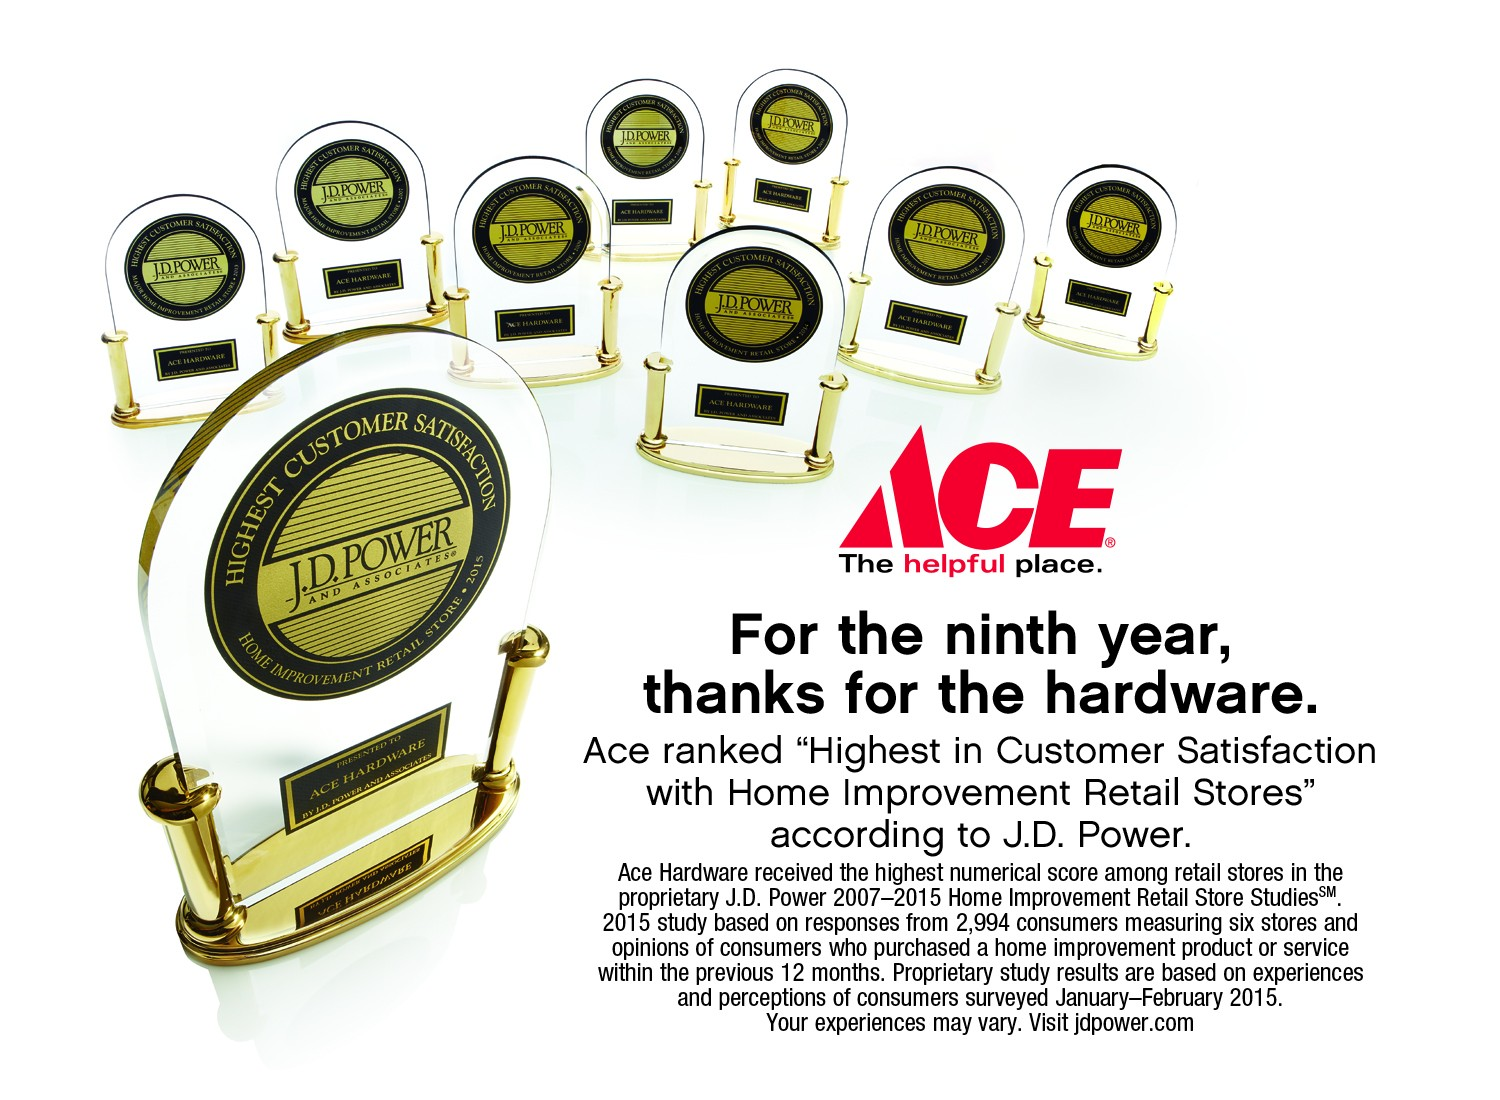 Ace Hardware Ranks Highest In Customer Satisfaction By J.D